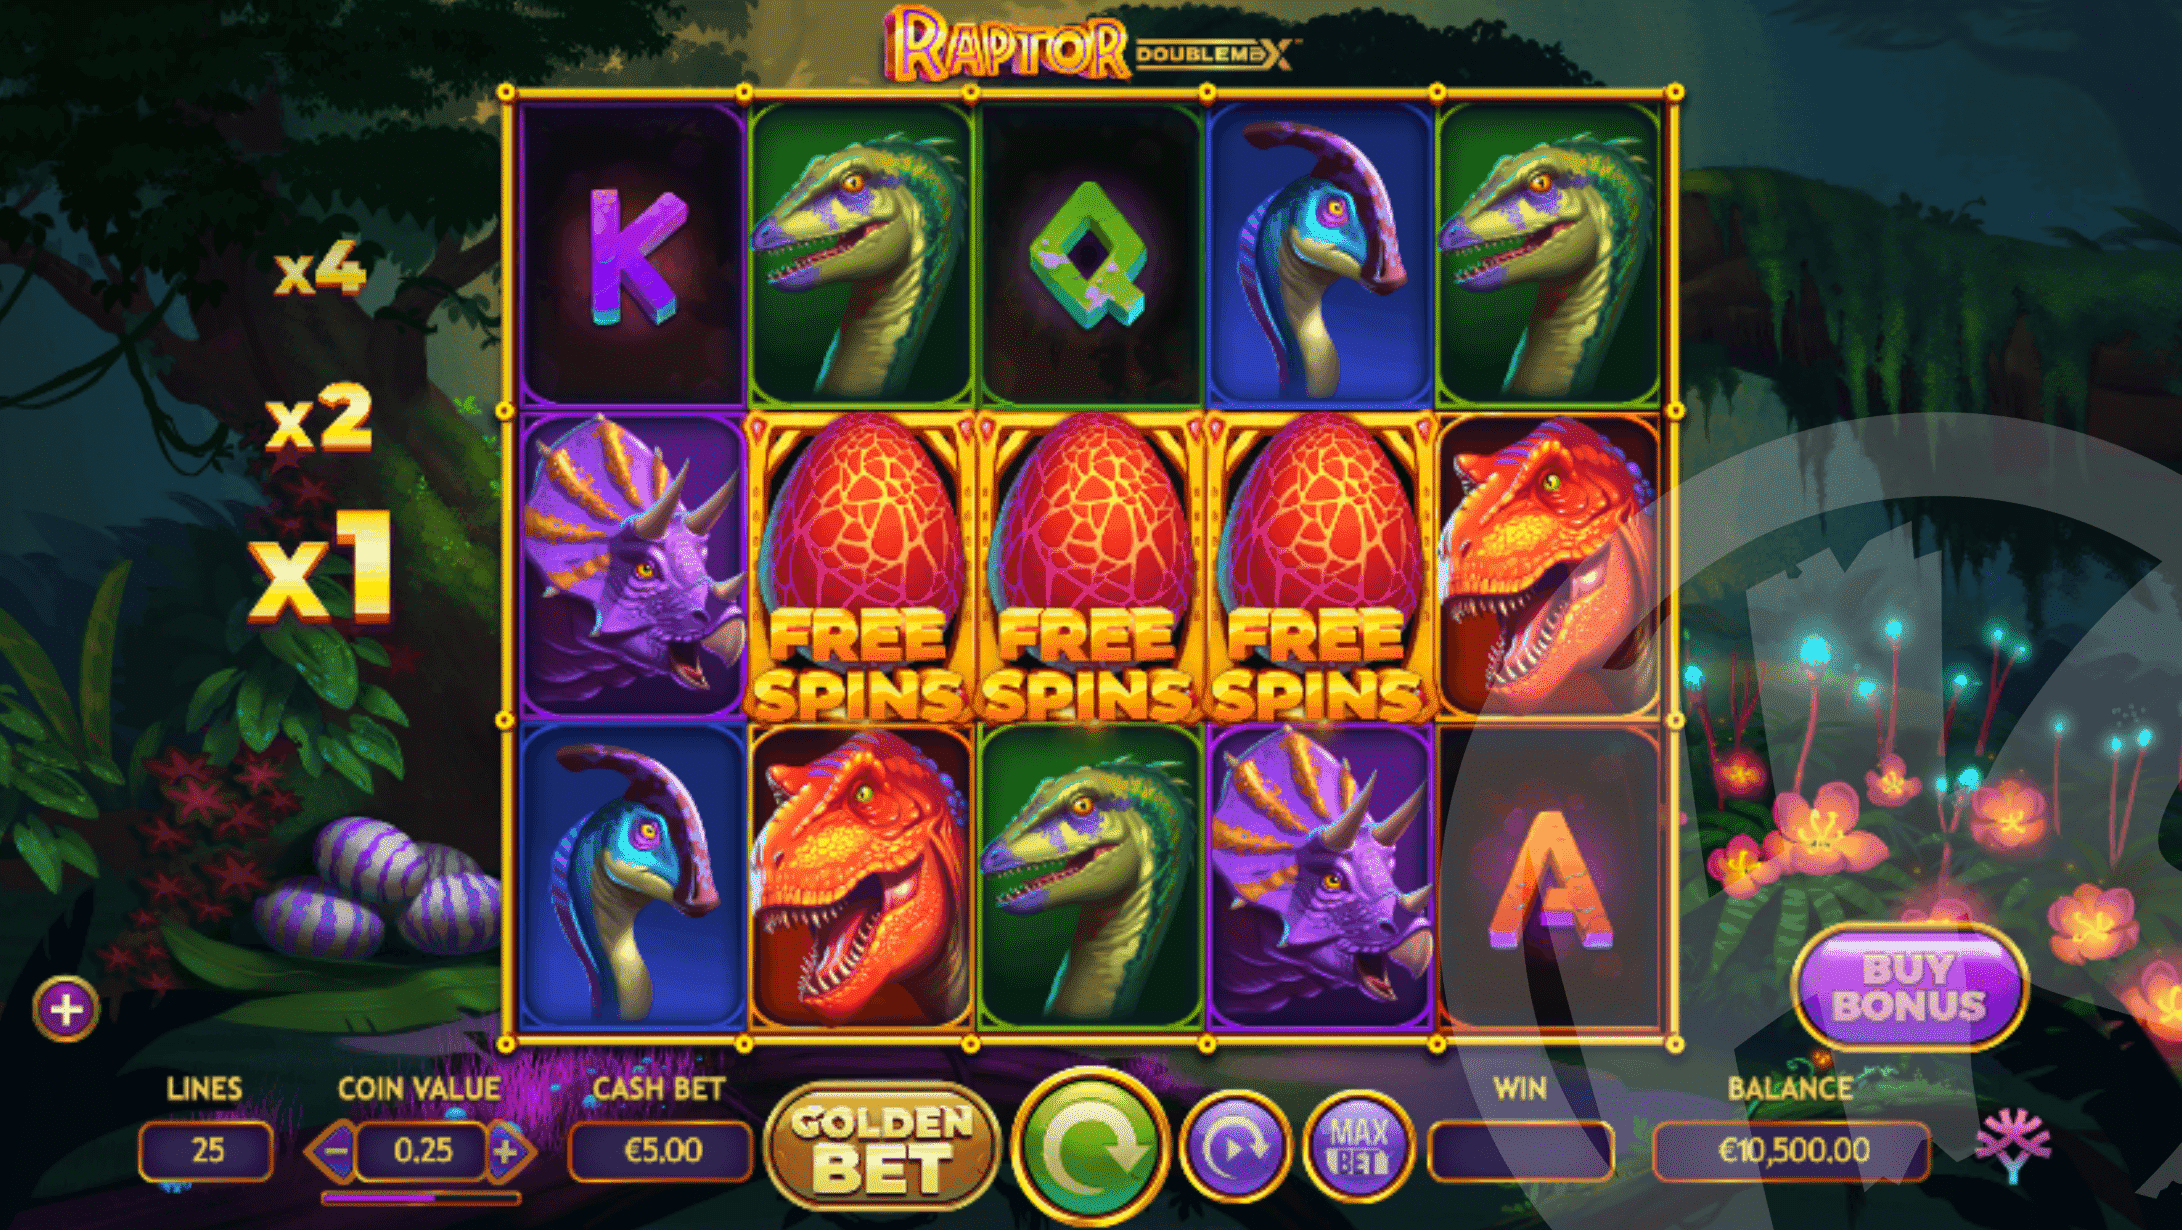 3+ Scatters Triggers Free Spins